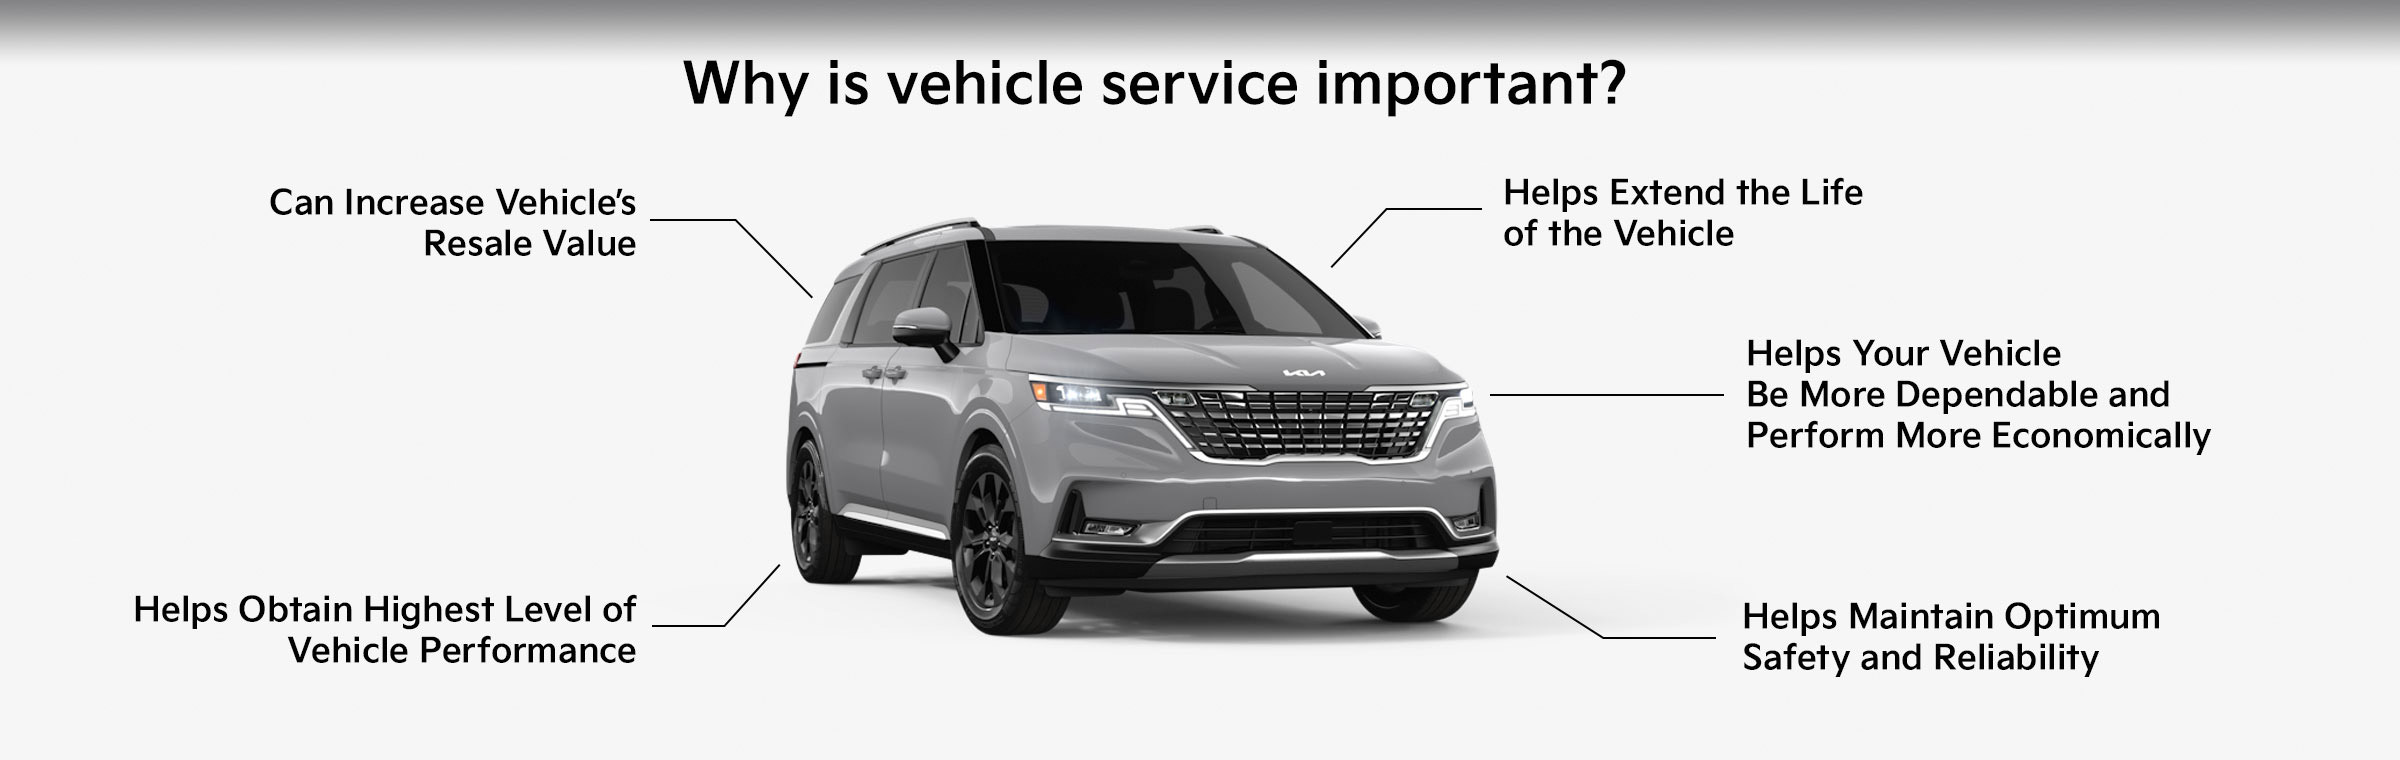 Kia Service is Important